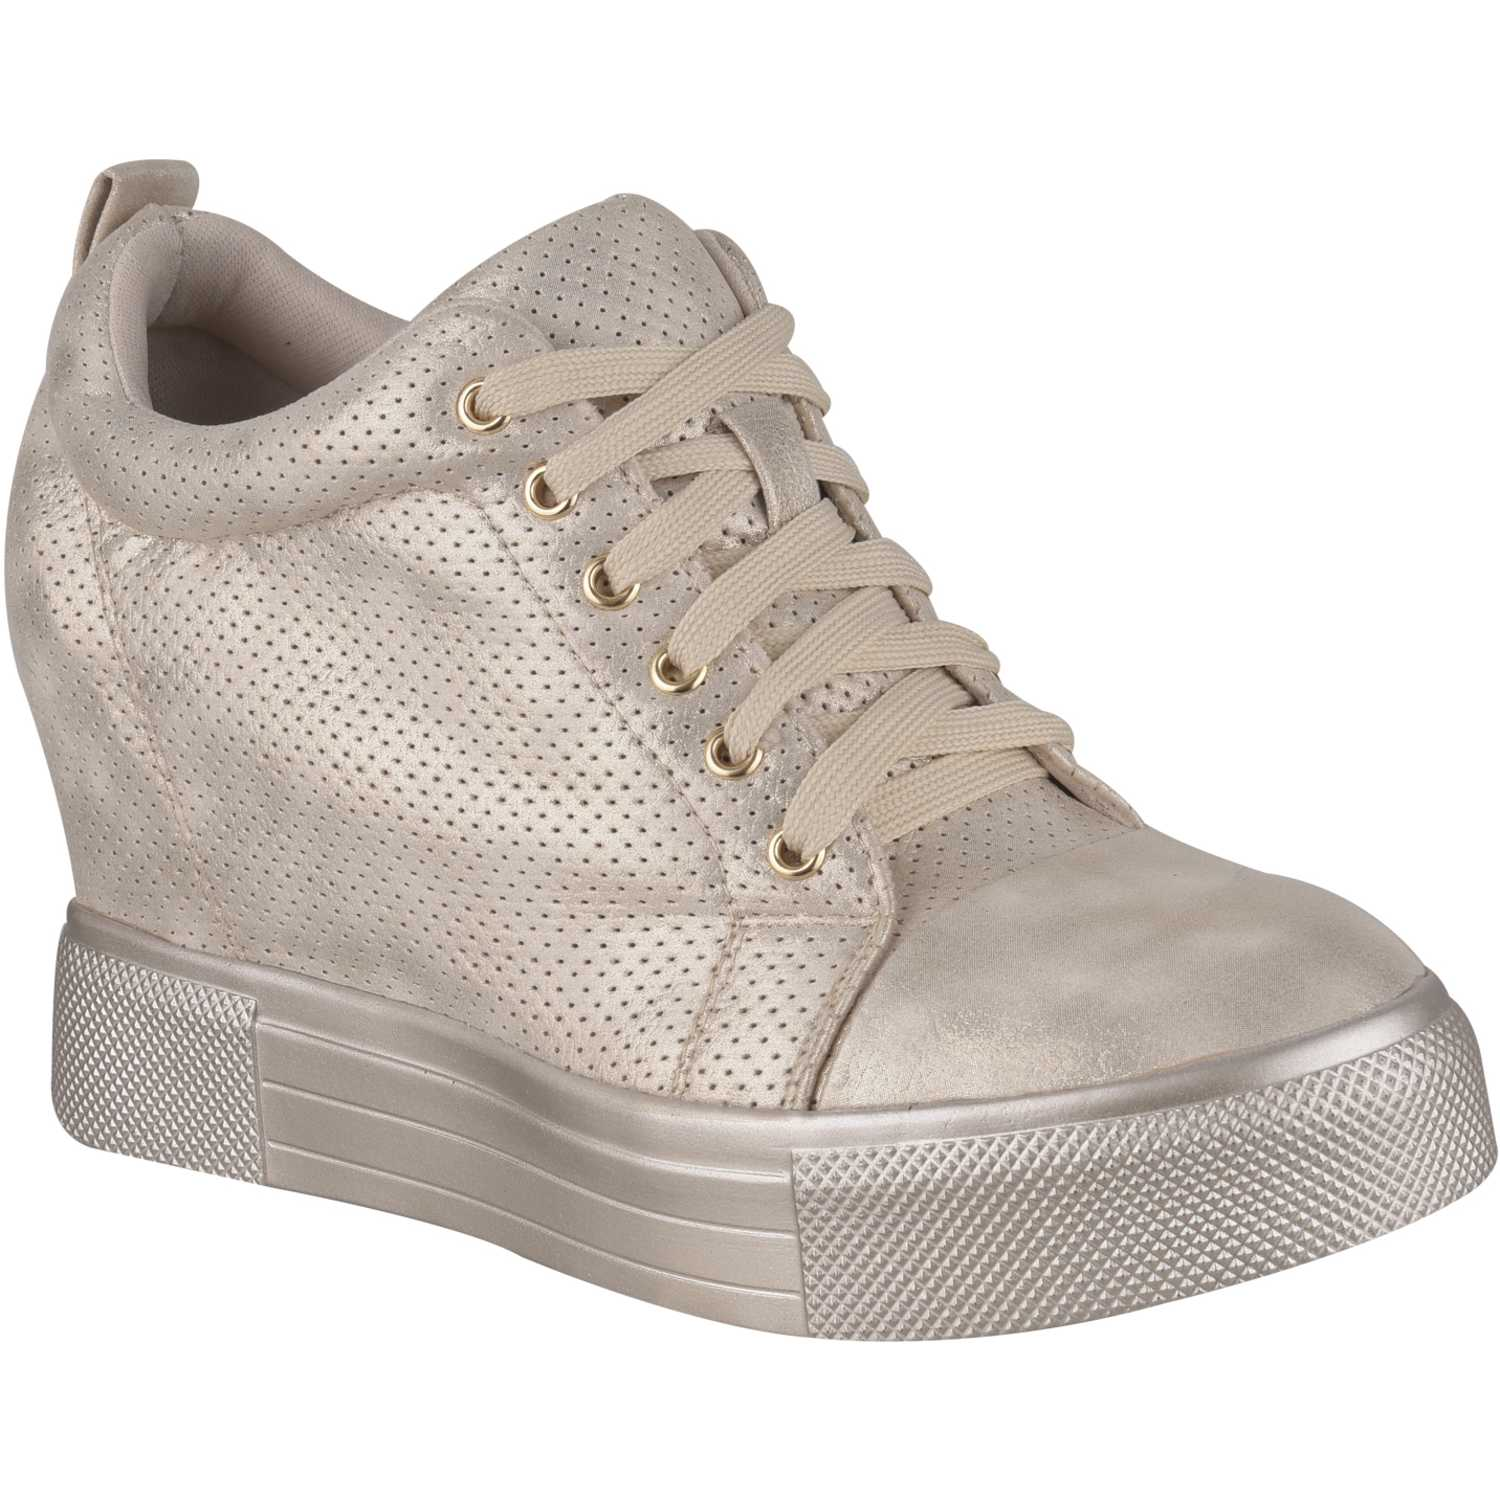 Platanitos Zw Giggle03 Champagne Zapatillas Fashion